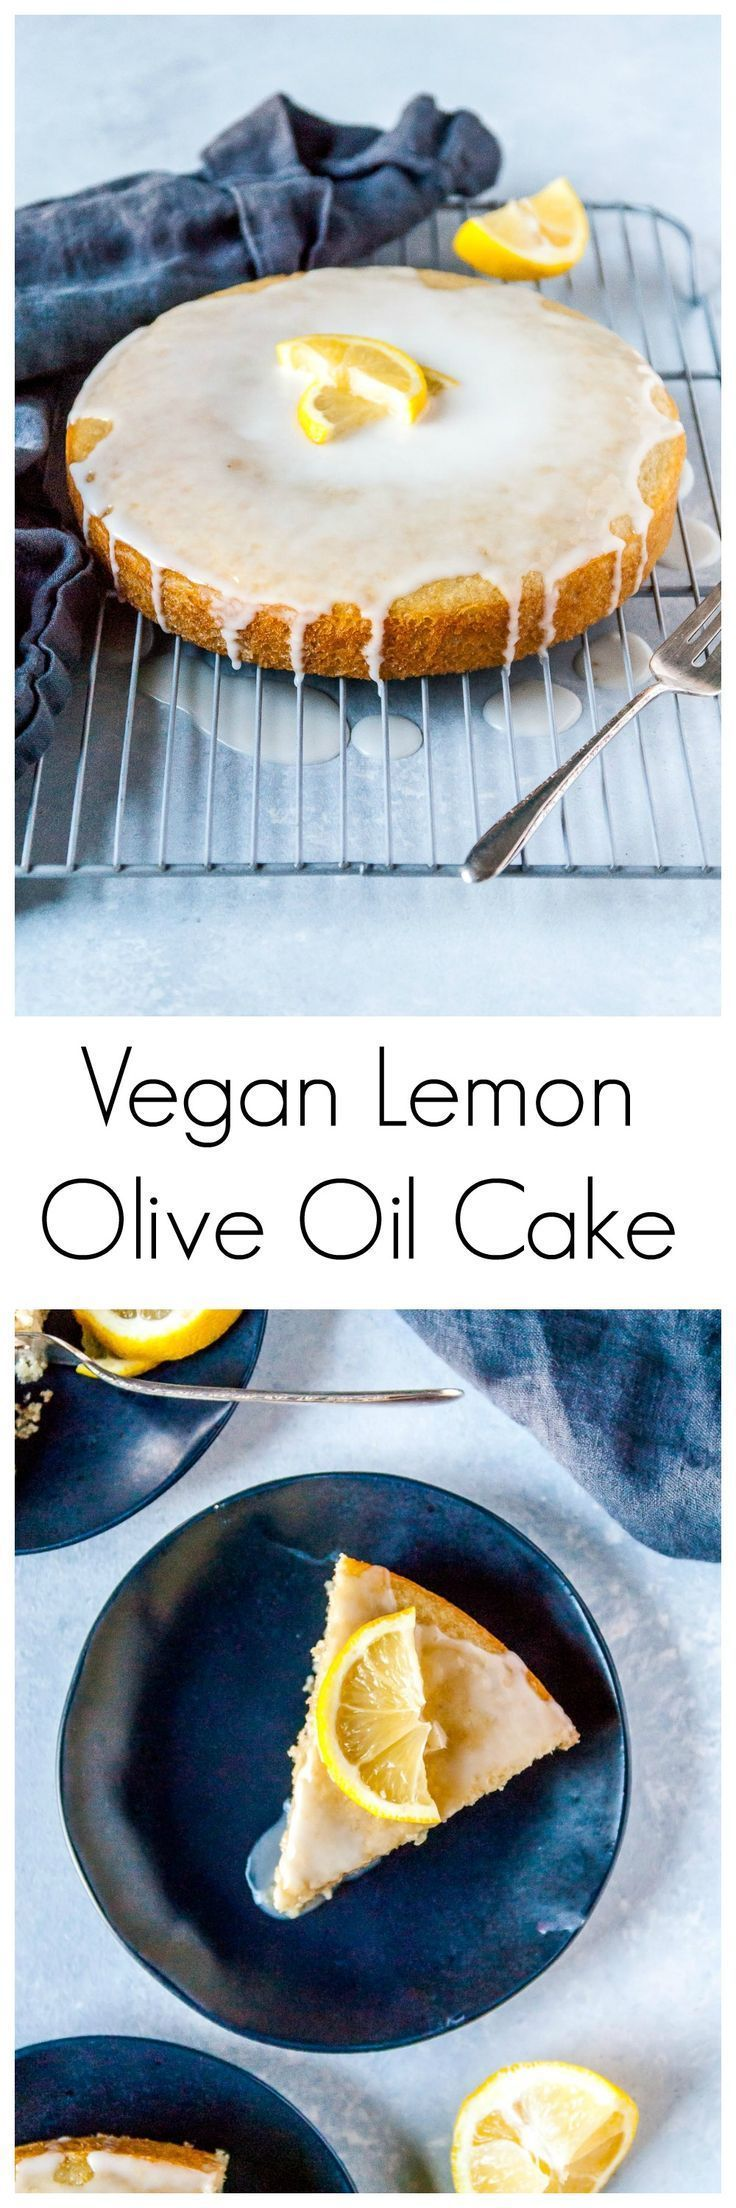 A perfectly sweet and tart vegan lemon cake made with olive oil! Frosted with a powdered sugar glaze, this cake is bound to be your new favorite lemon dessert.